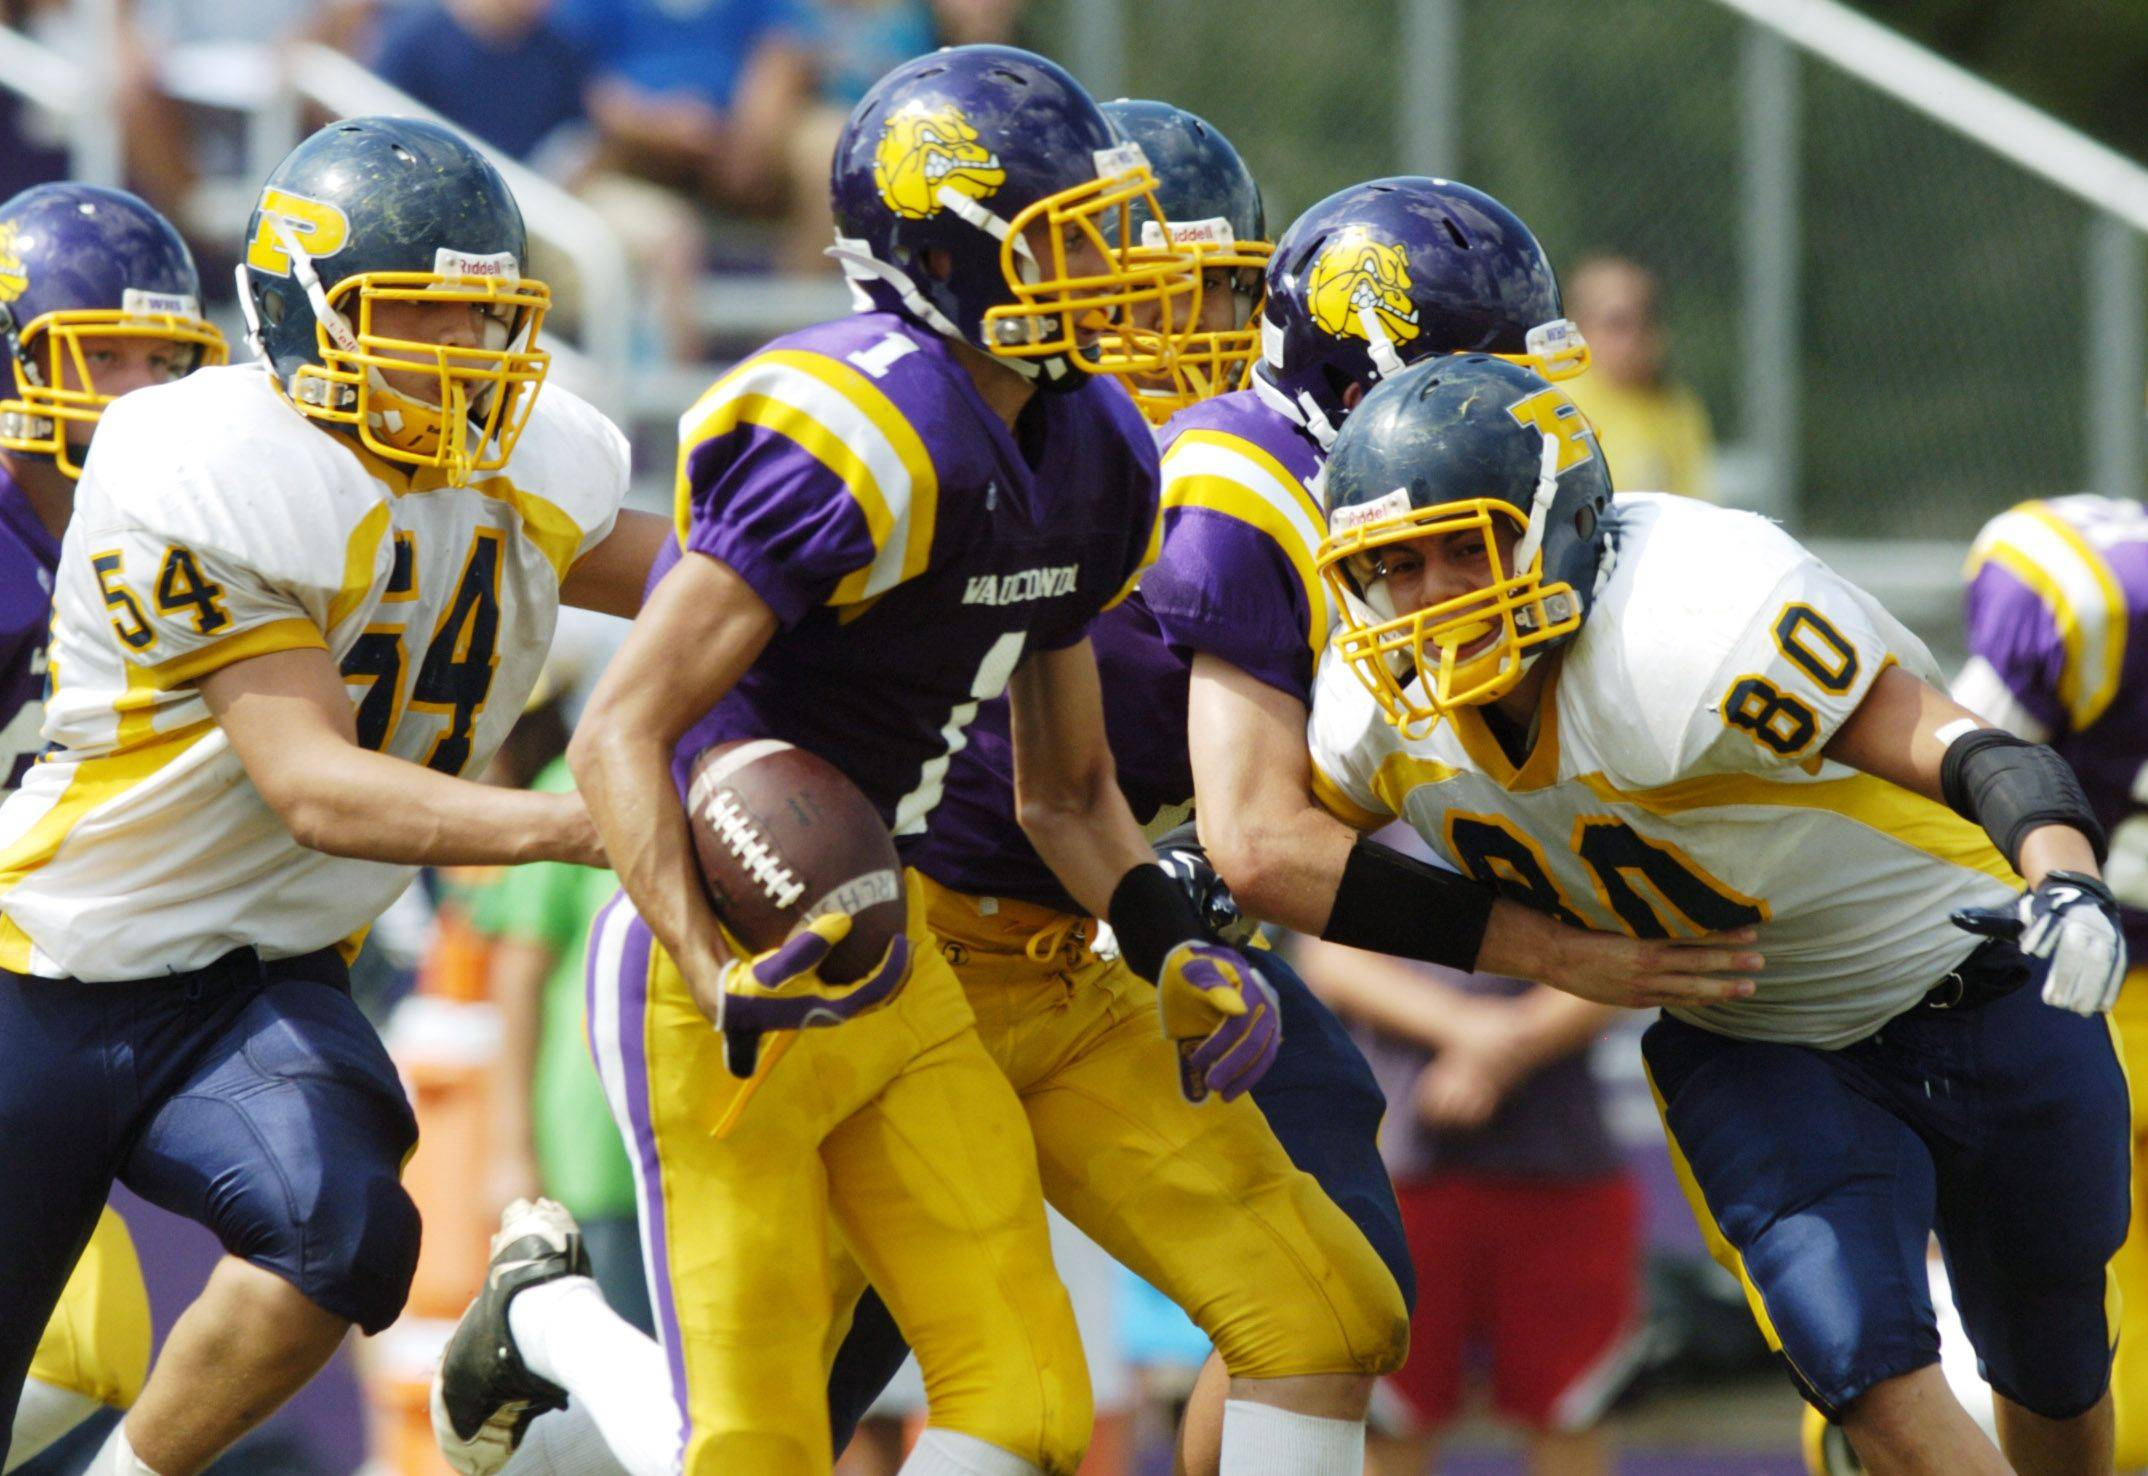 Wauconda's Eric Dragon, middle, carries the ball after making an interception as Round Lake's Luis Aceves, left, and Eddie Acevedo close in during Saturday's game.